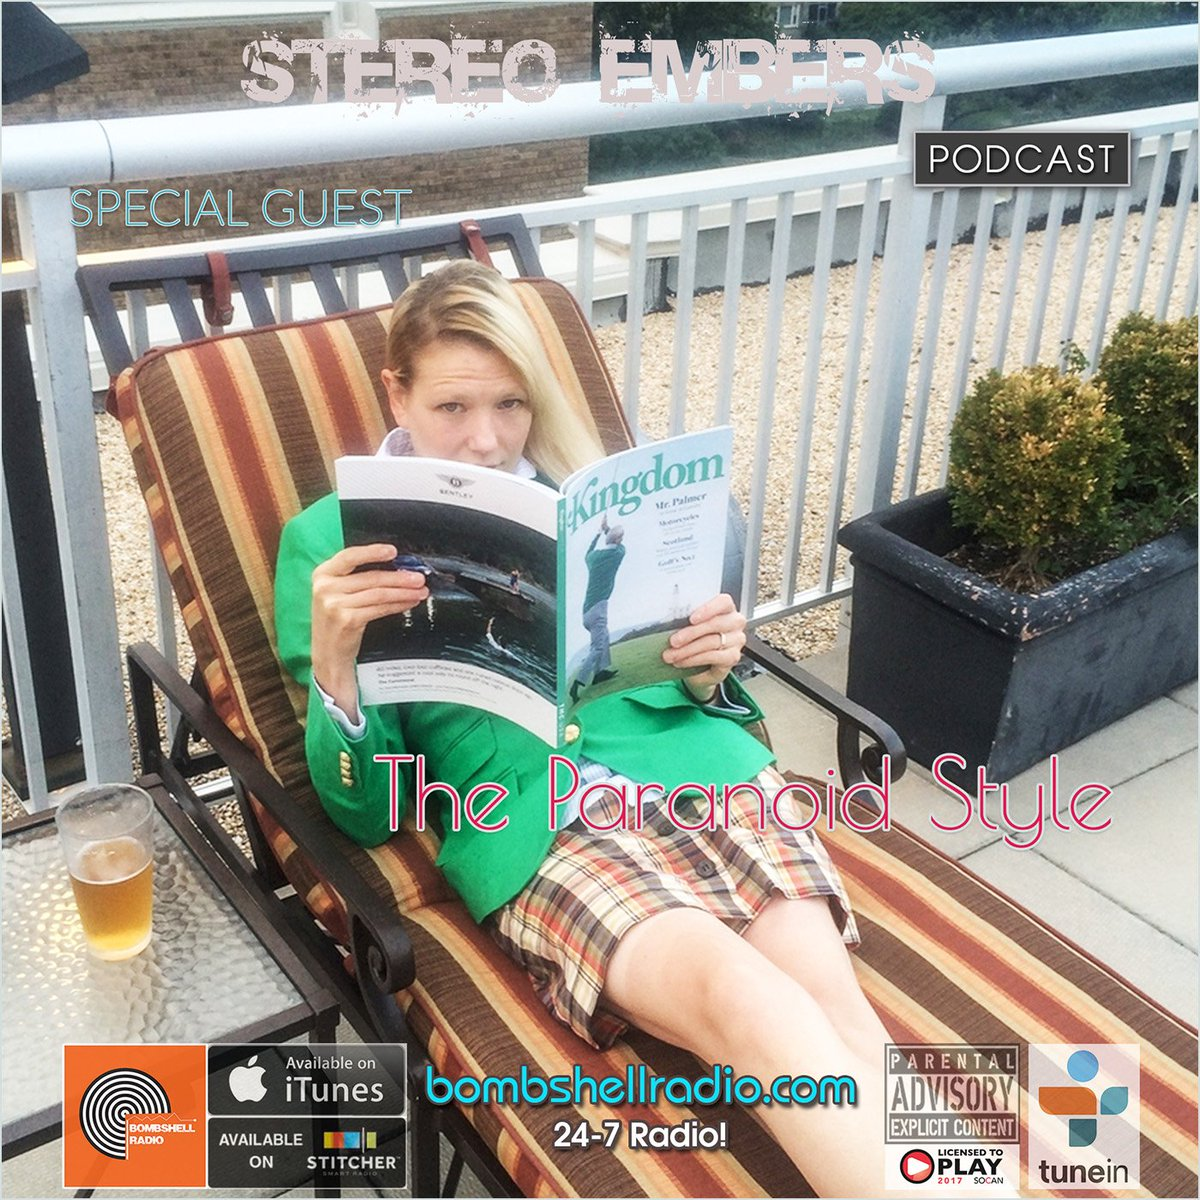 test Twitter Media - Join Us! https://t.co/cO7KP84sjU  Stereo Embers:The Podcast   New Shows  @EmbersEditor  Thursdays 2pm-3pm EST  This Week   Stereo Embers Magazine   Alex Green #Interviews  #StereoEmbers, #podcast, #RadioShow, #AlexGreen, #Alternative, #NewMusic, #Nowplaying , #BombshellRadio https://t.co/wz9sOXVRQb